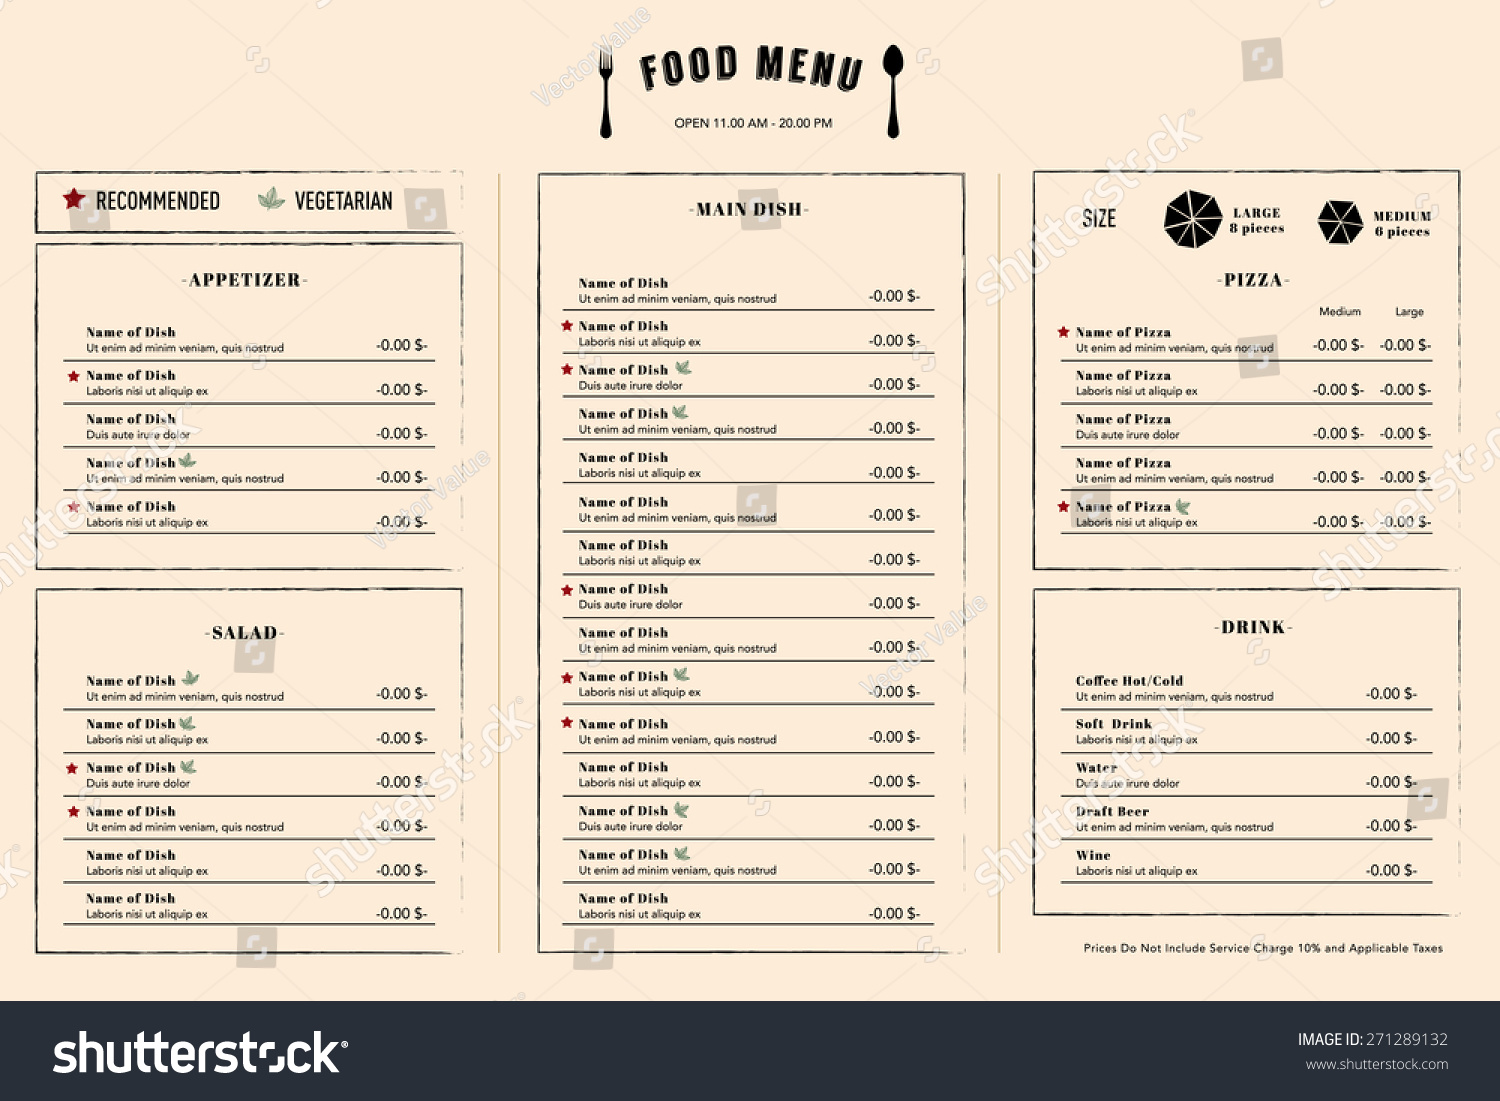 Restaurant menu design template layout logo stock vector